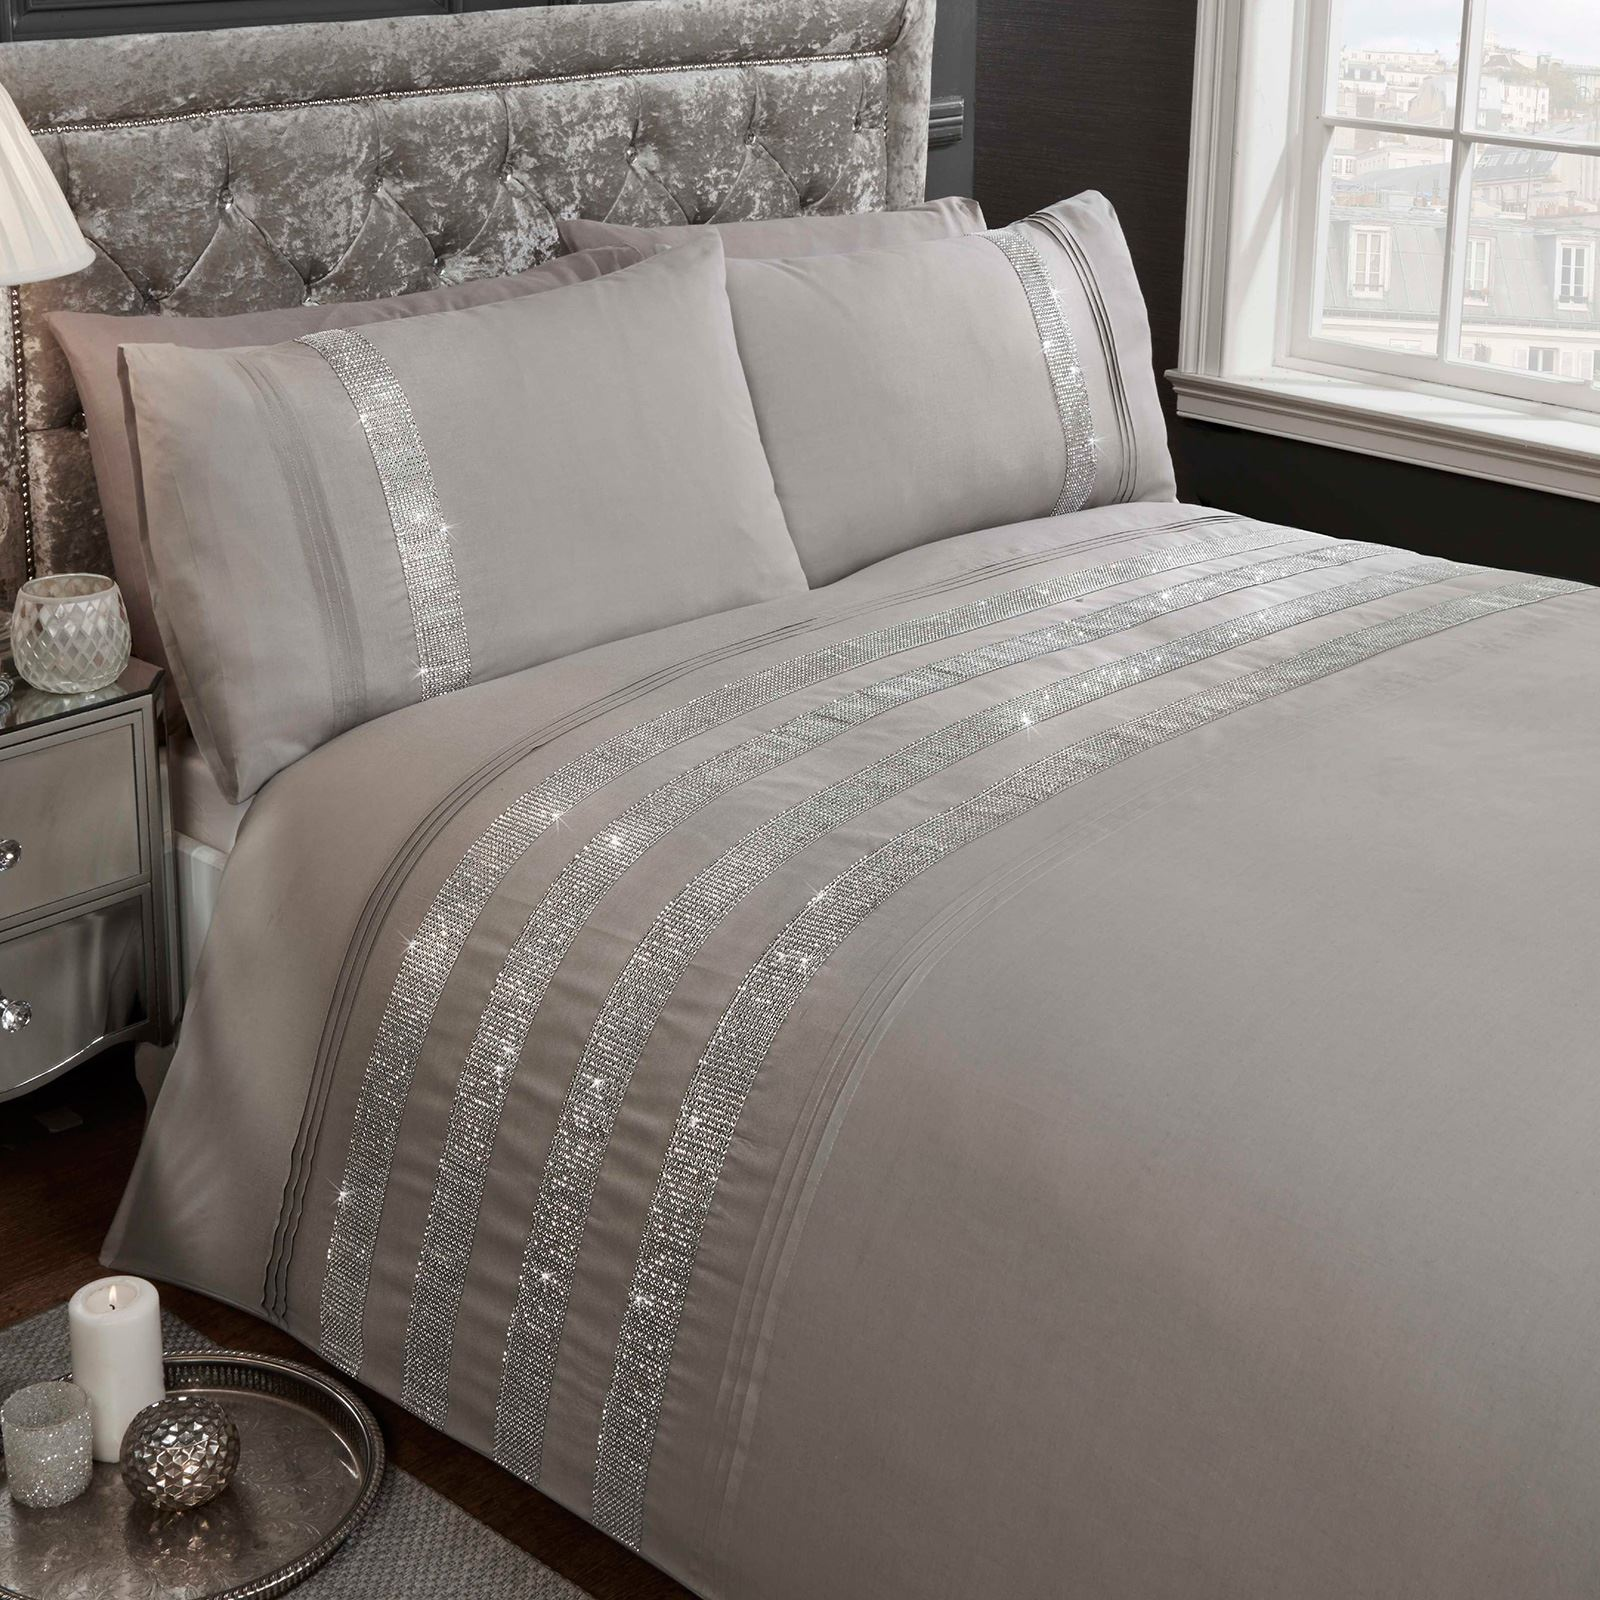 Carly diamante grey king size duvet cover set adult bedding set new